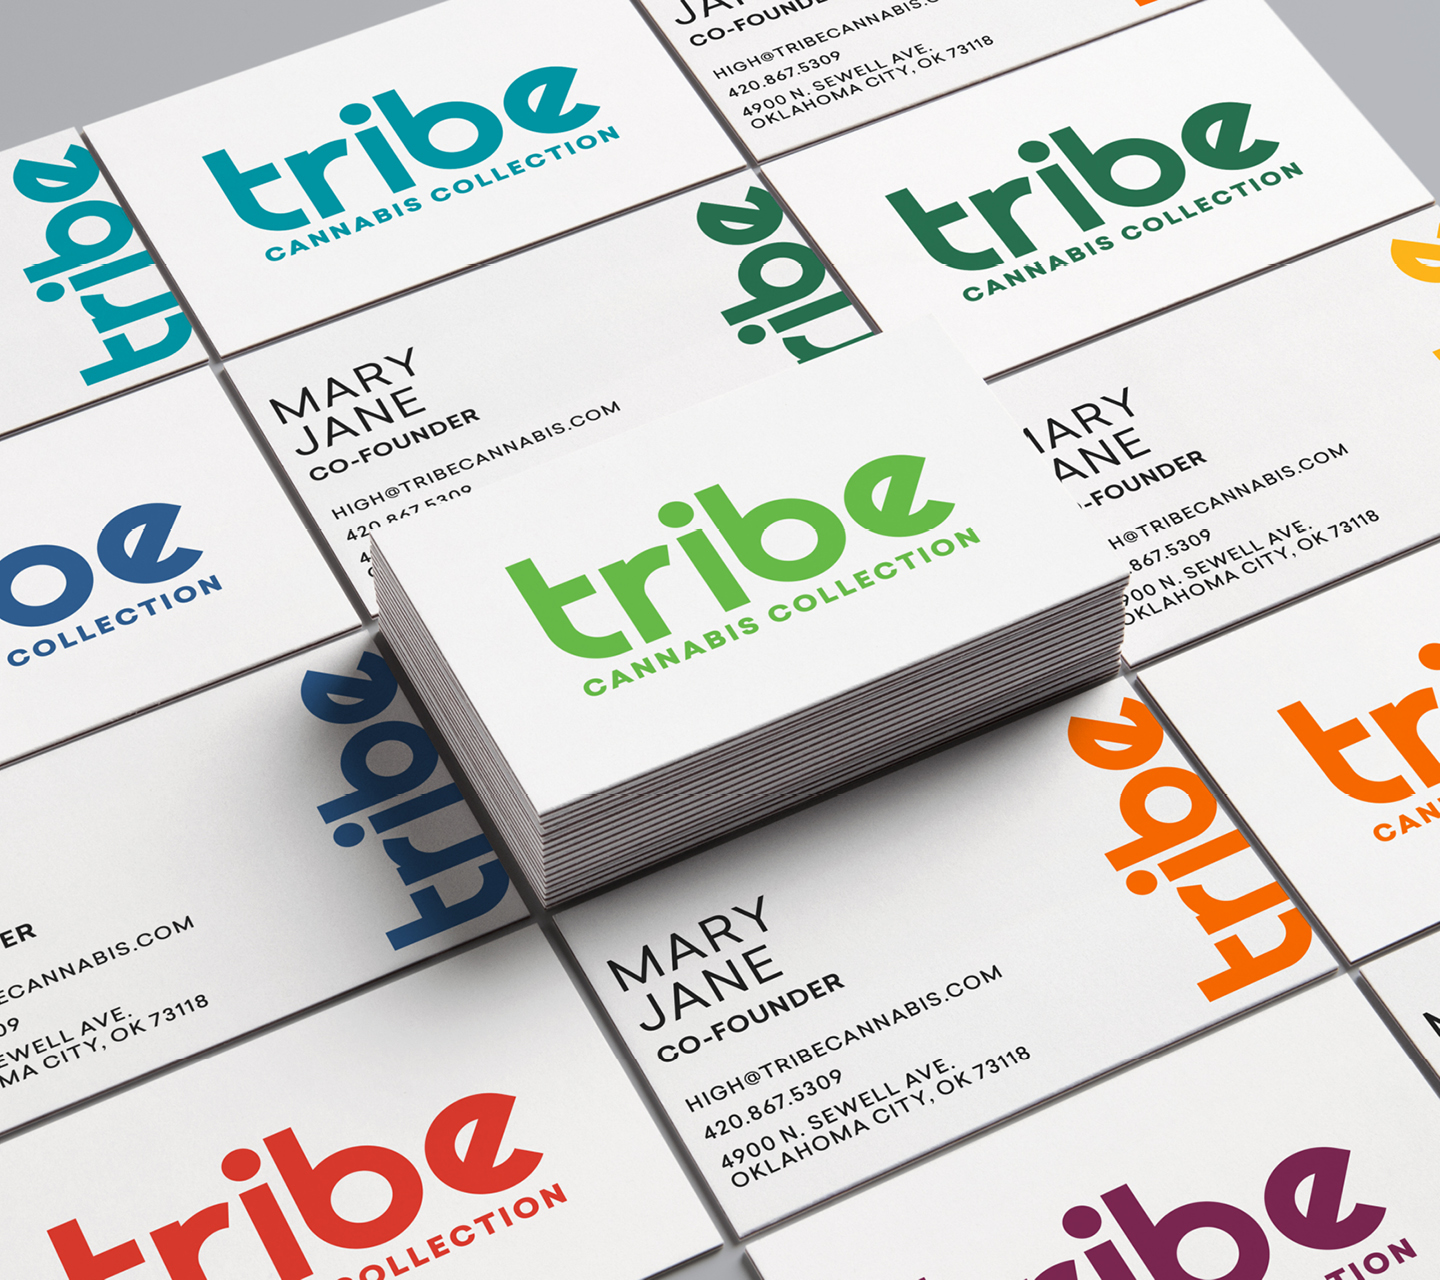 Tribe Cannabis Collection Business Card Design by High Road Design Studio